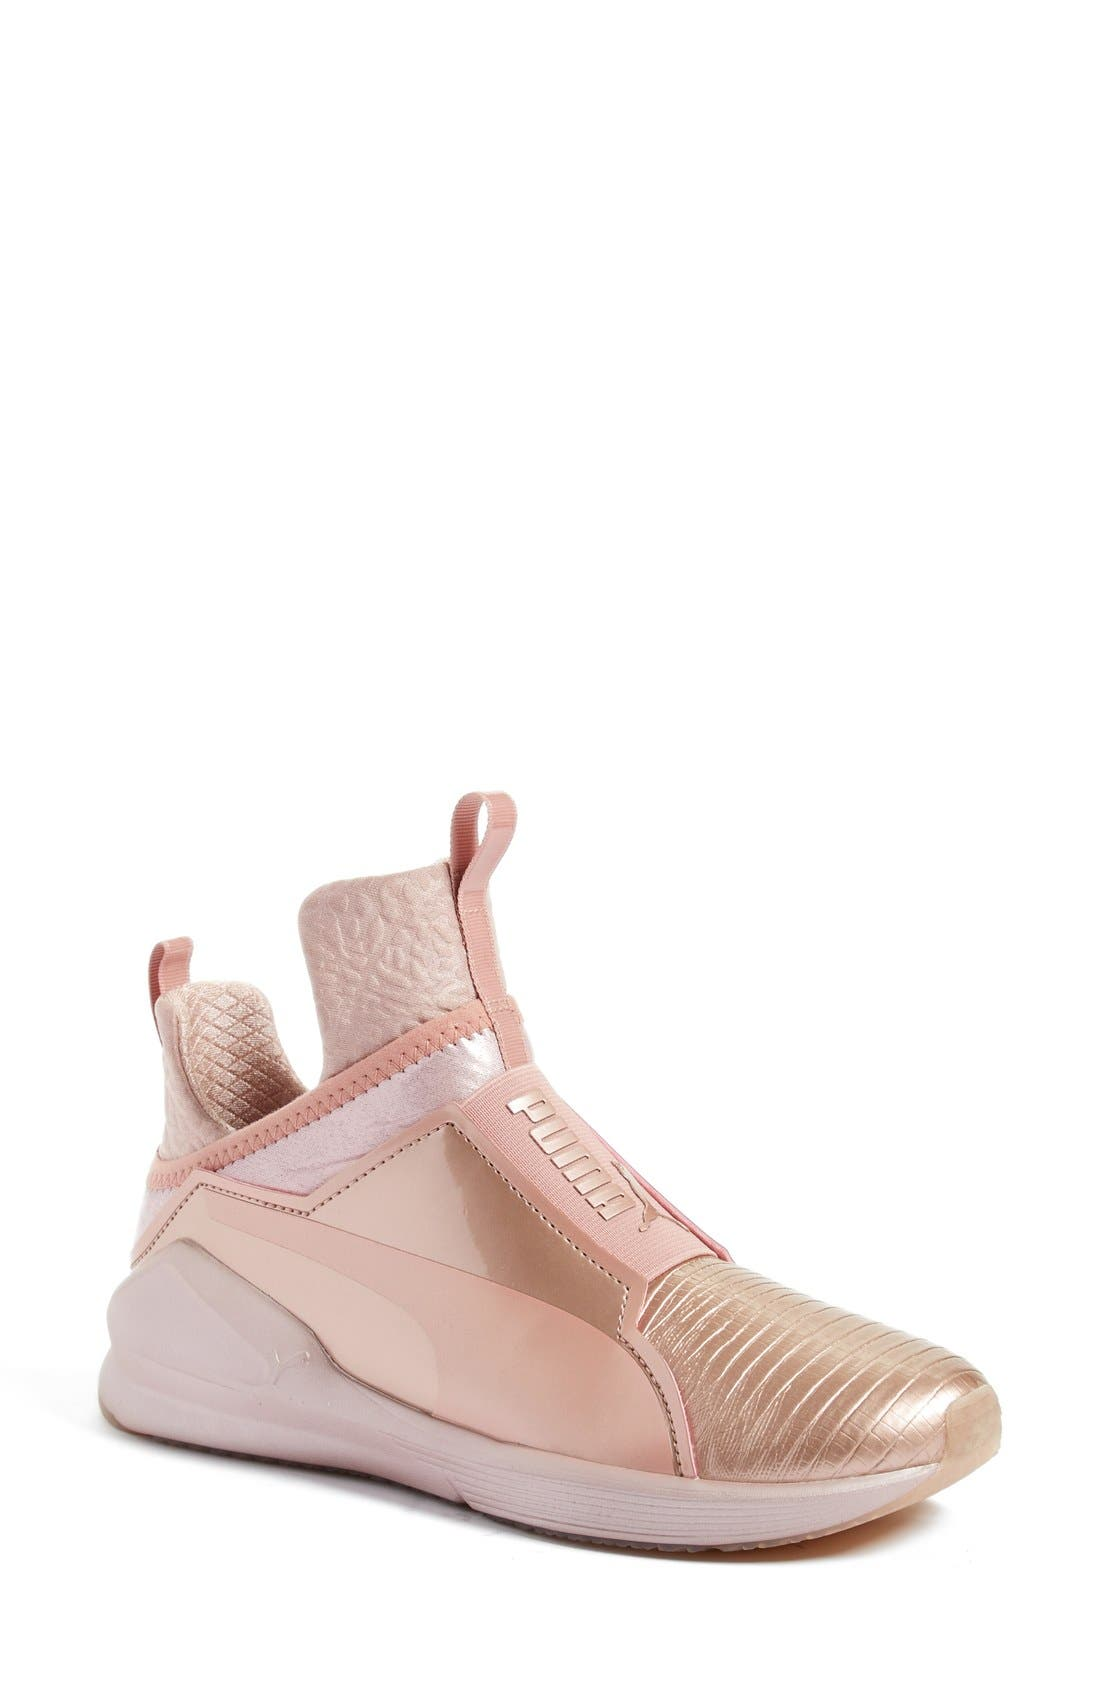 puma high tops womens. main image - puma fierce metallic high top sneaker (women) puma tops womens n